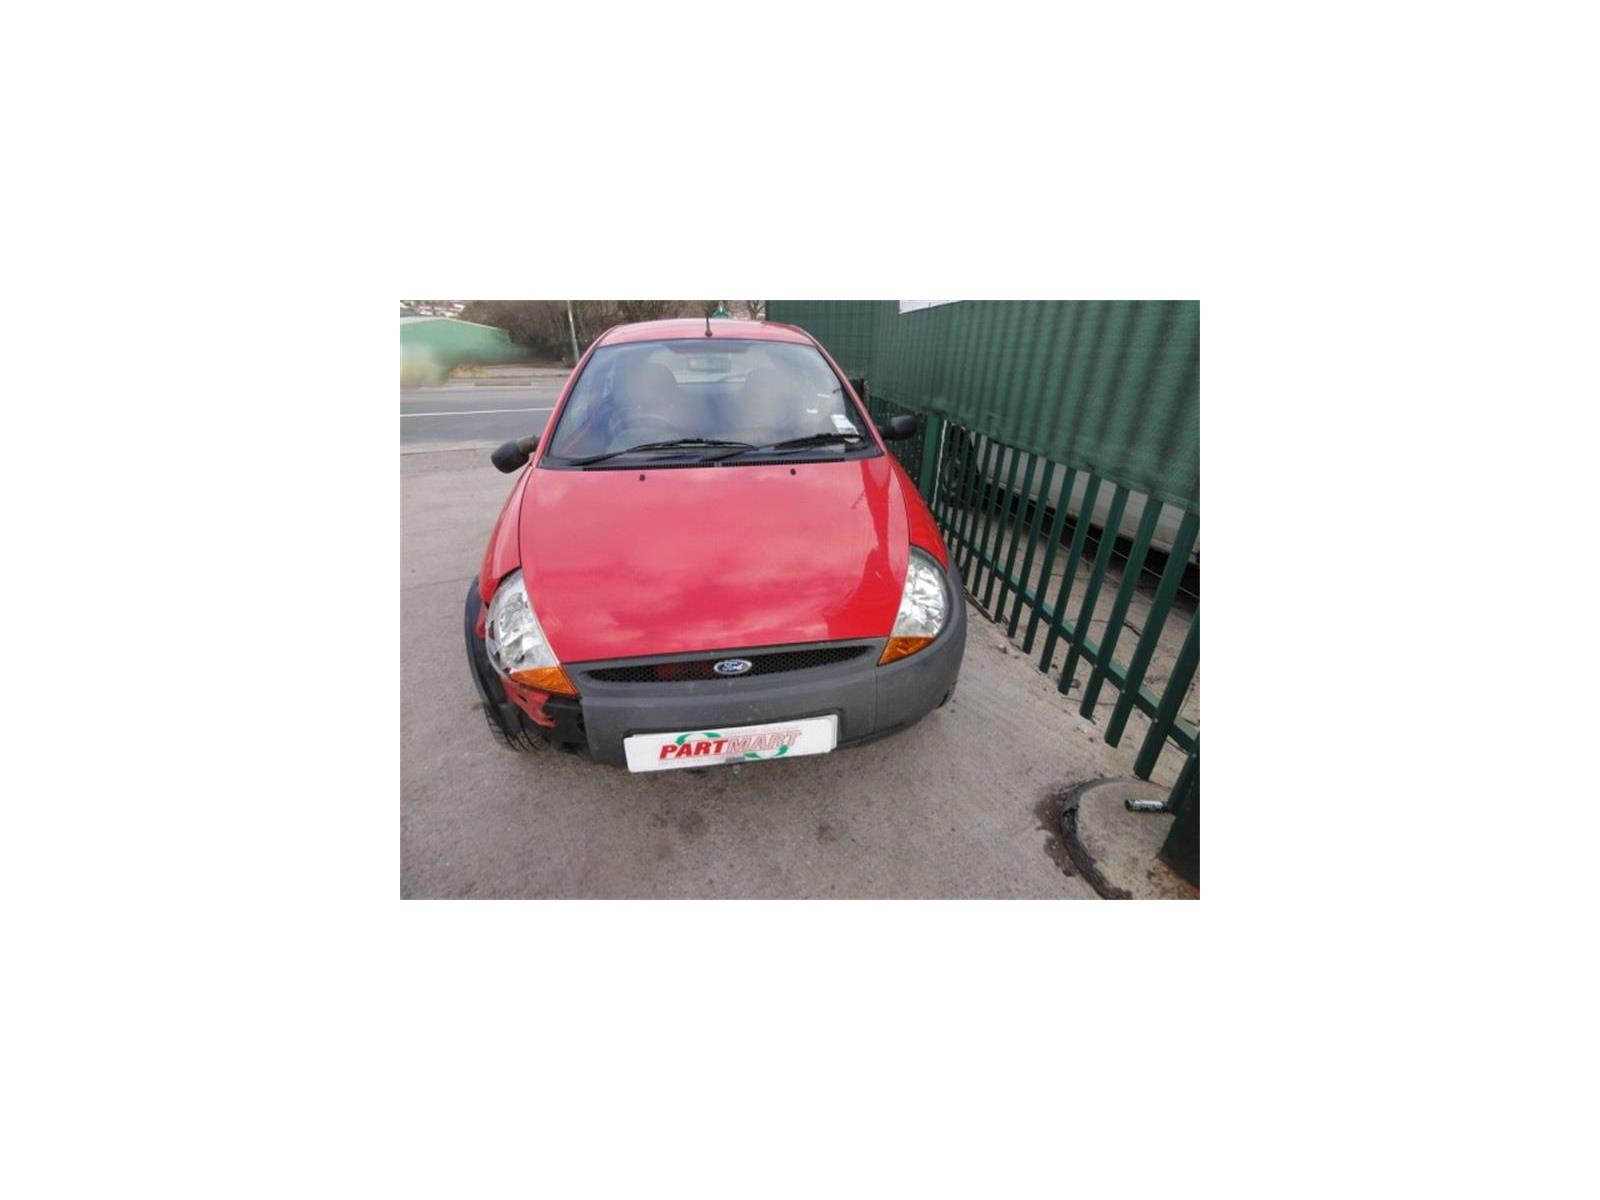 Ford Ka Manual 2002 Here39s A Diagram Of Harley39s Iconic Pushrod Vtwin Equipped With The Array 1997 To 2008 3 Door Hatchback Petrol Rh Partmart Co